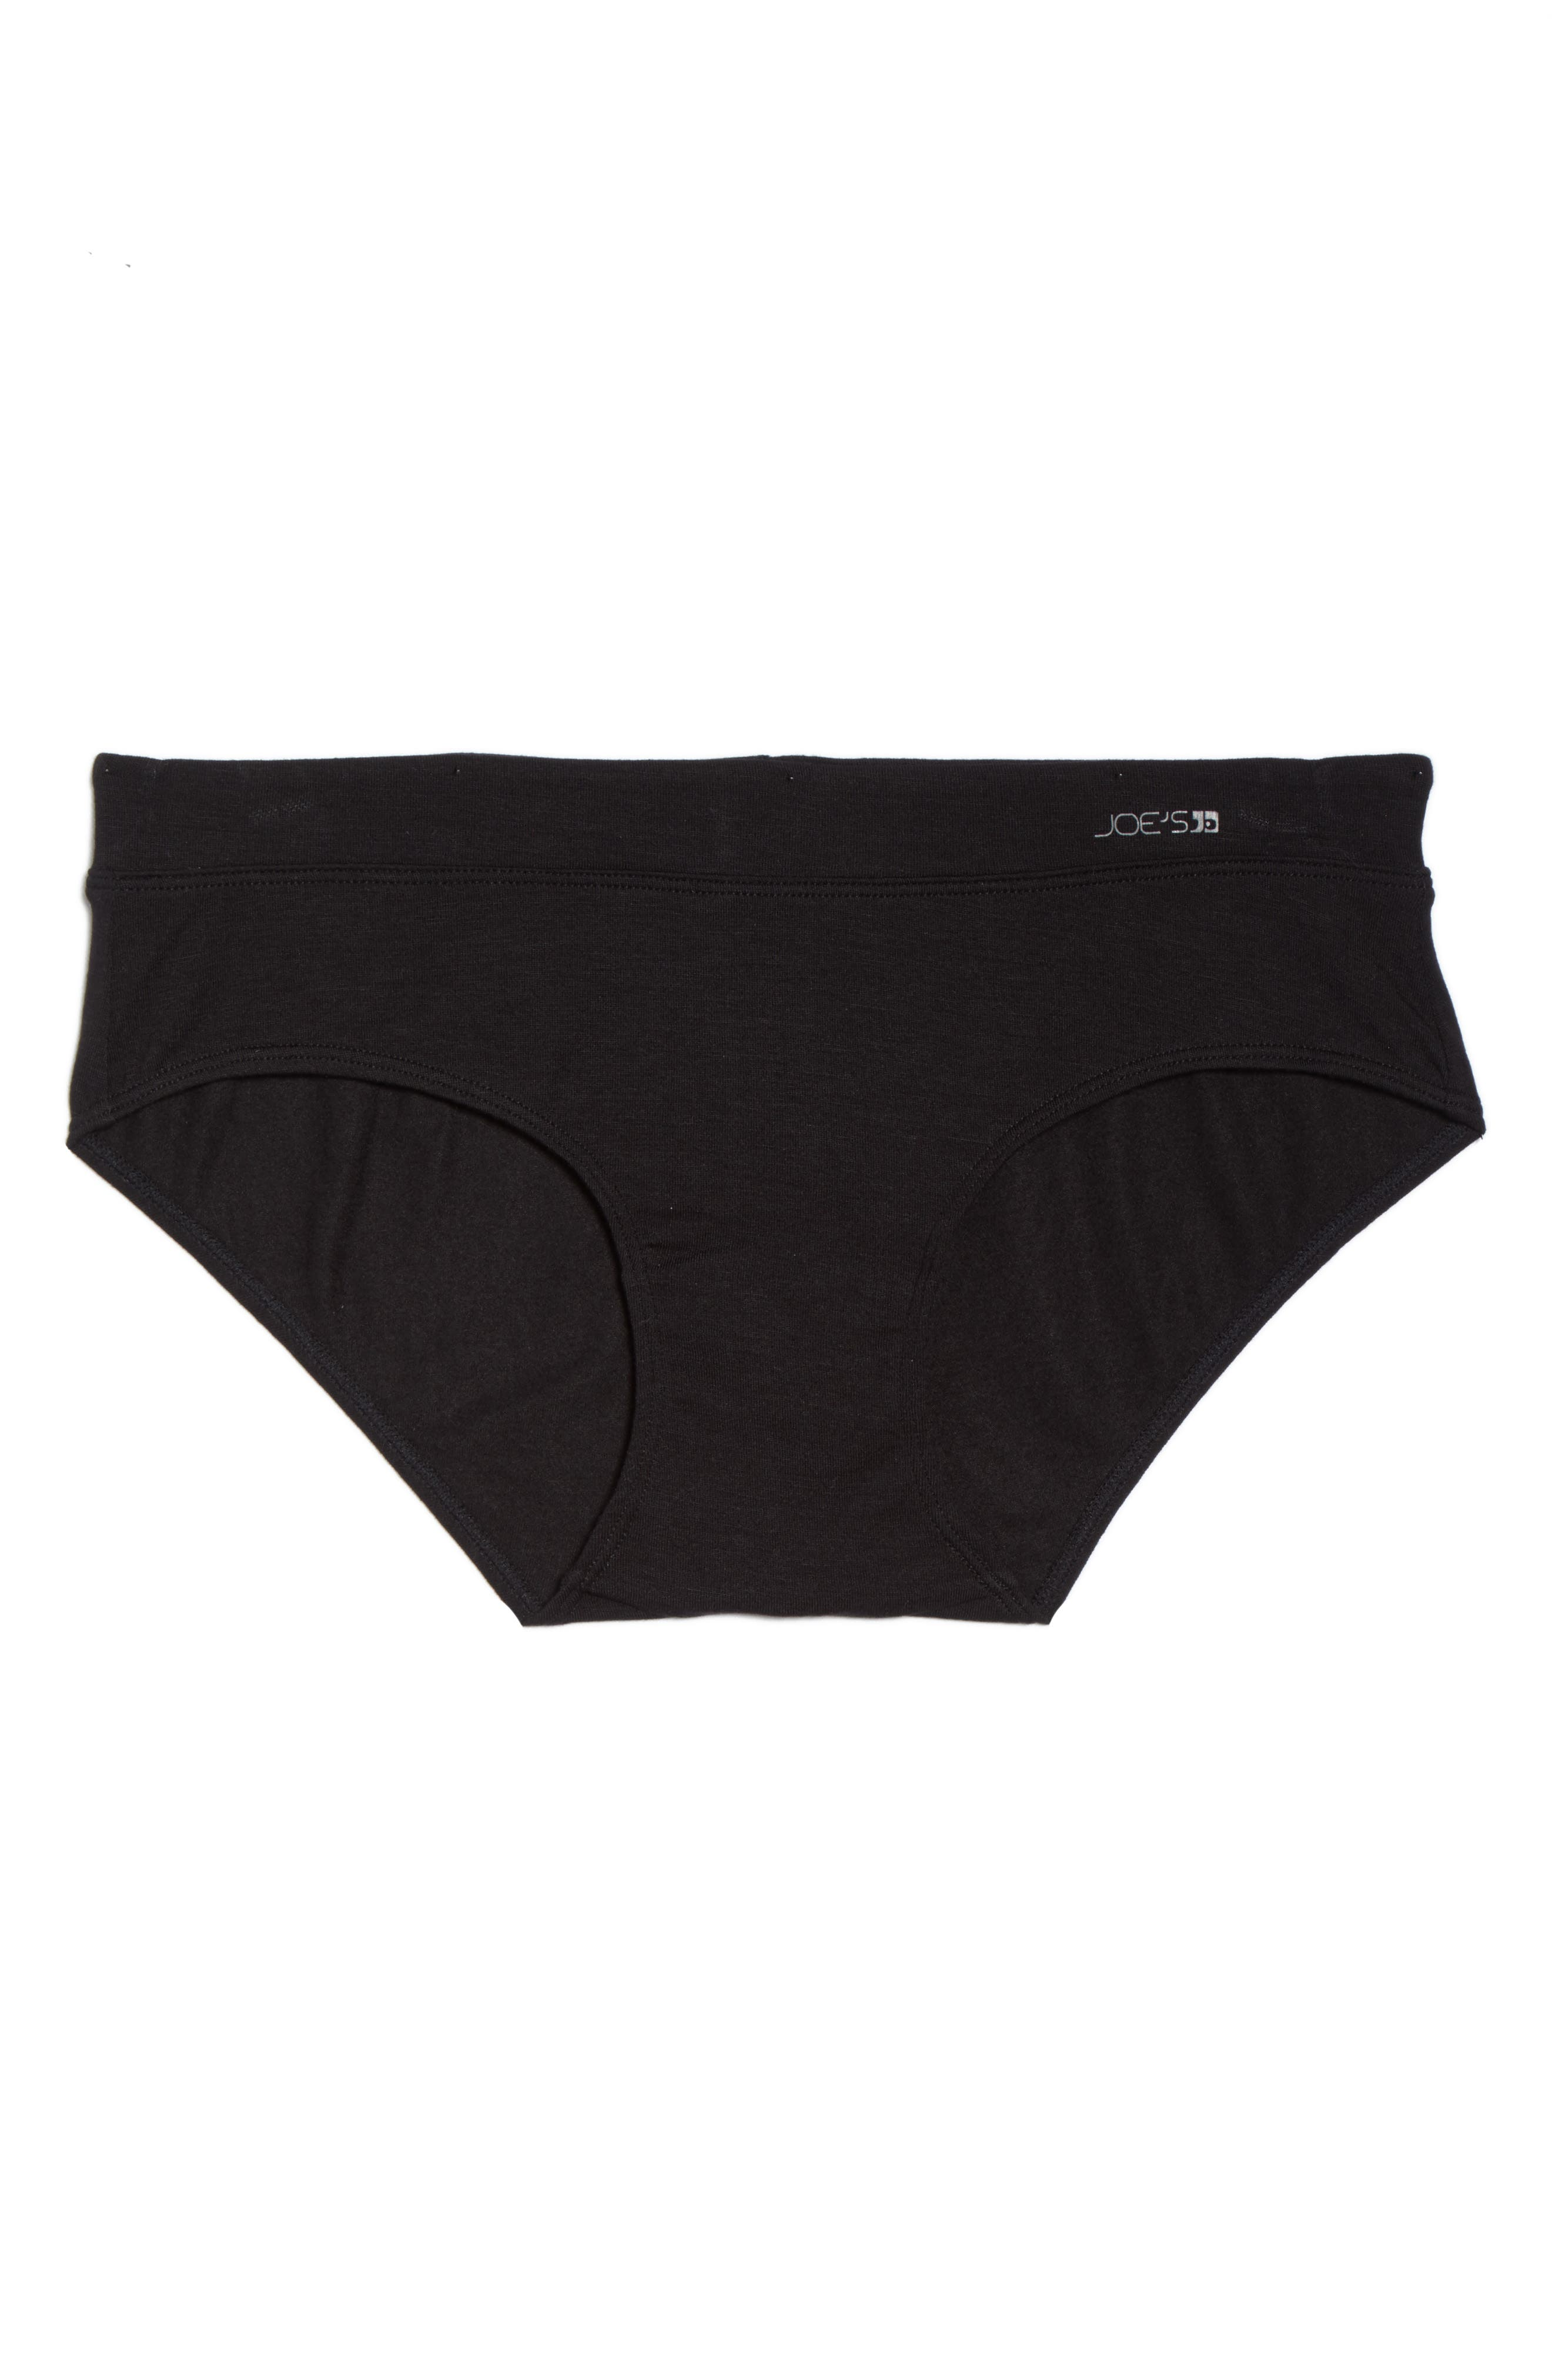 Hipster Briefs,                             Alternate thumbnail 6, color,                             001